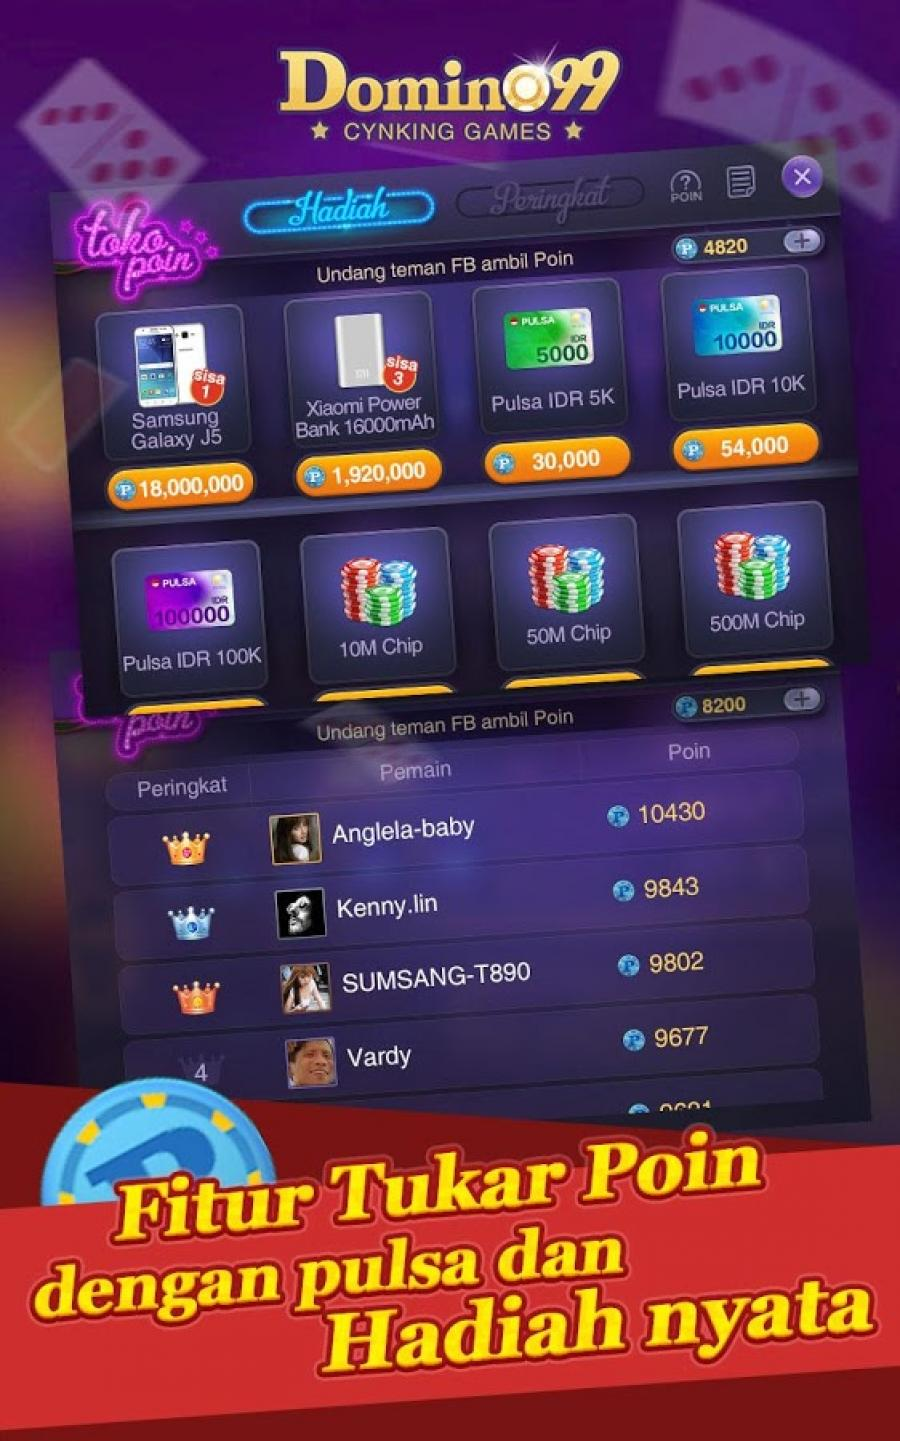 Domino Qiuqiu 99 Pulsa Free Android Game Apk Com Zhijian Domino1 By Cynking Games Download To Your Mobile From Phoneky